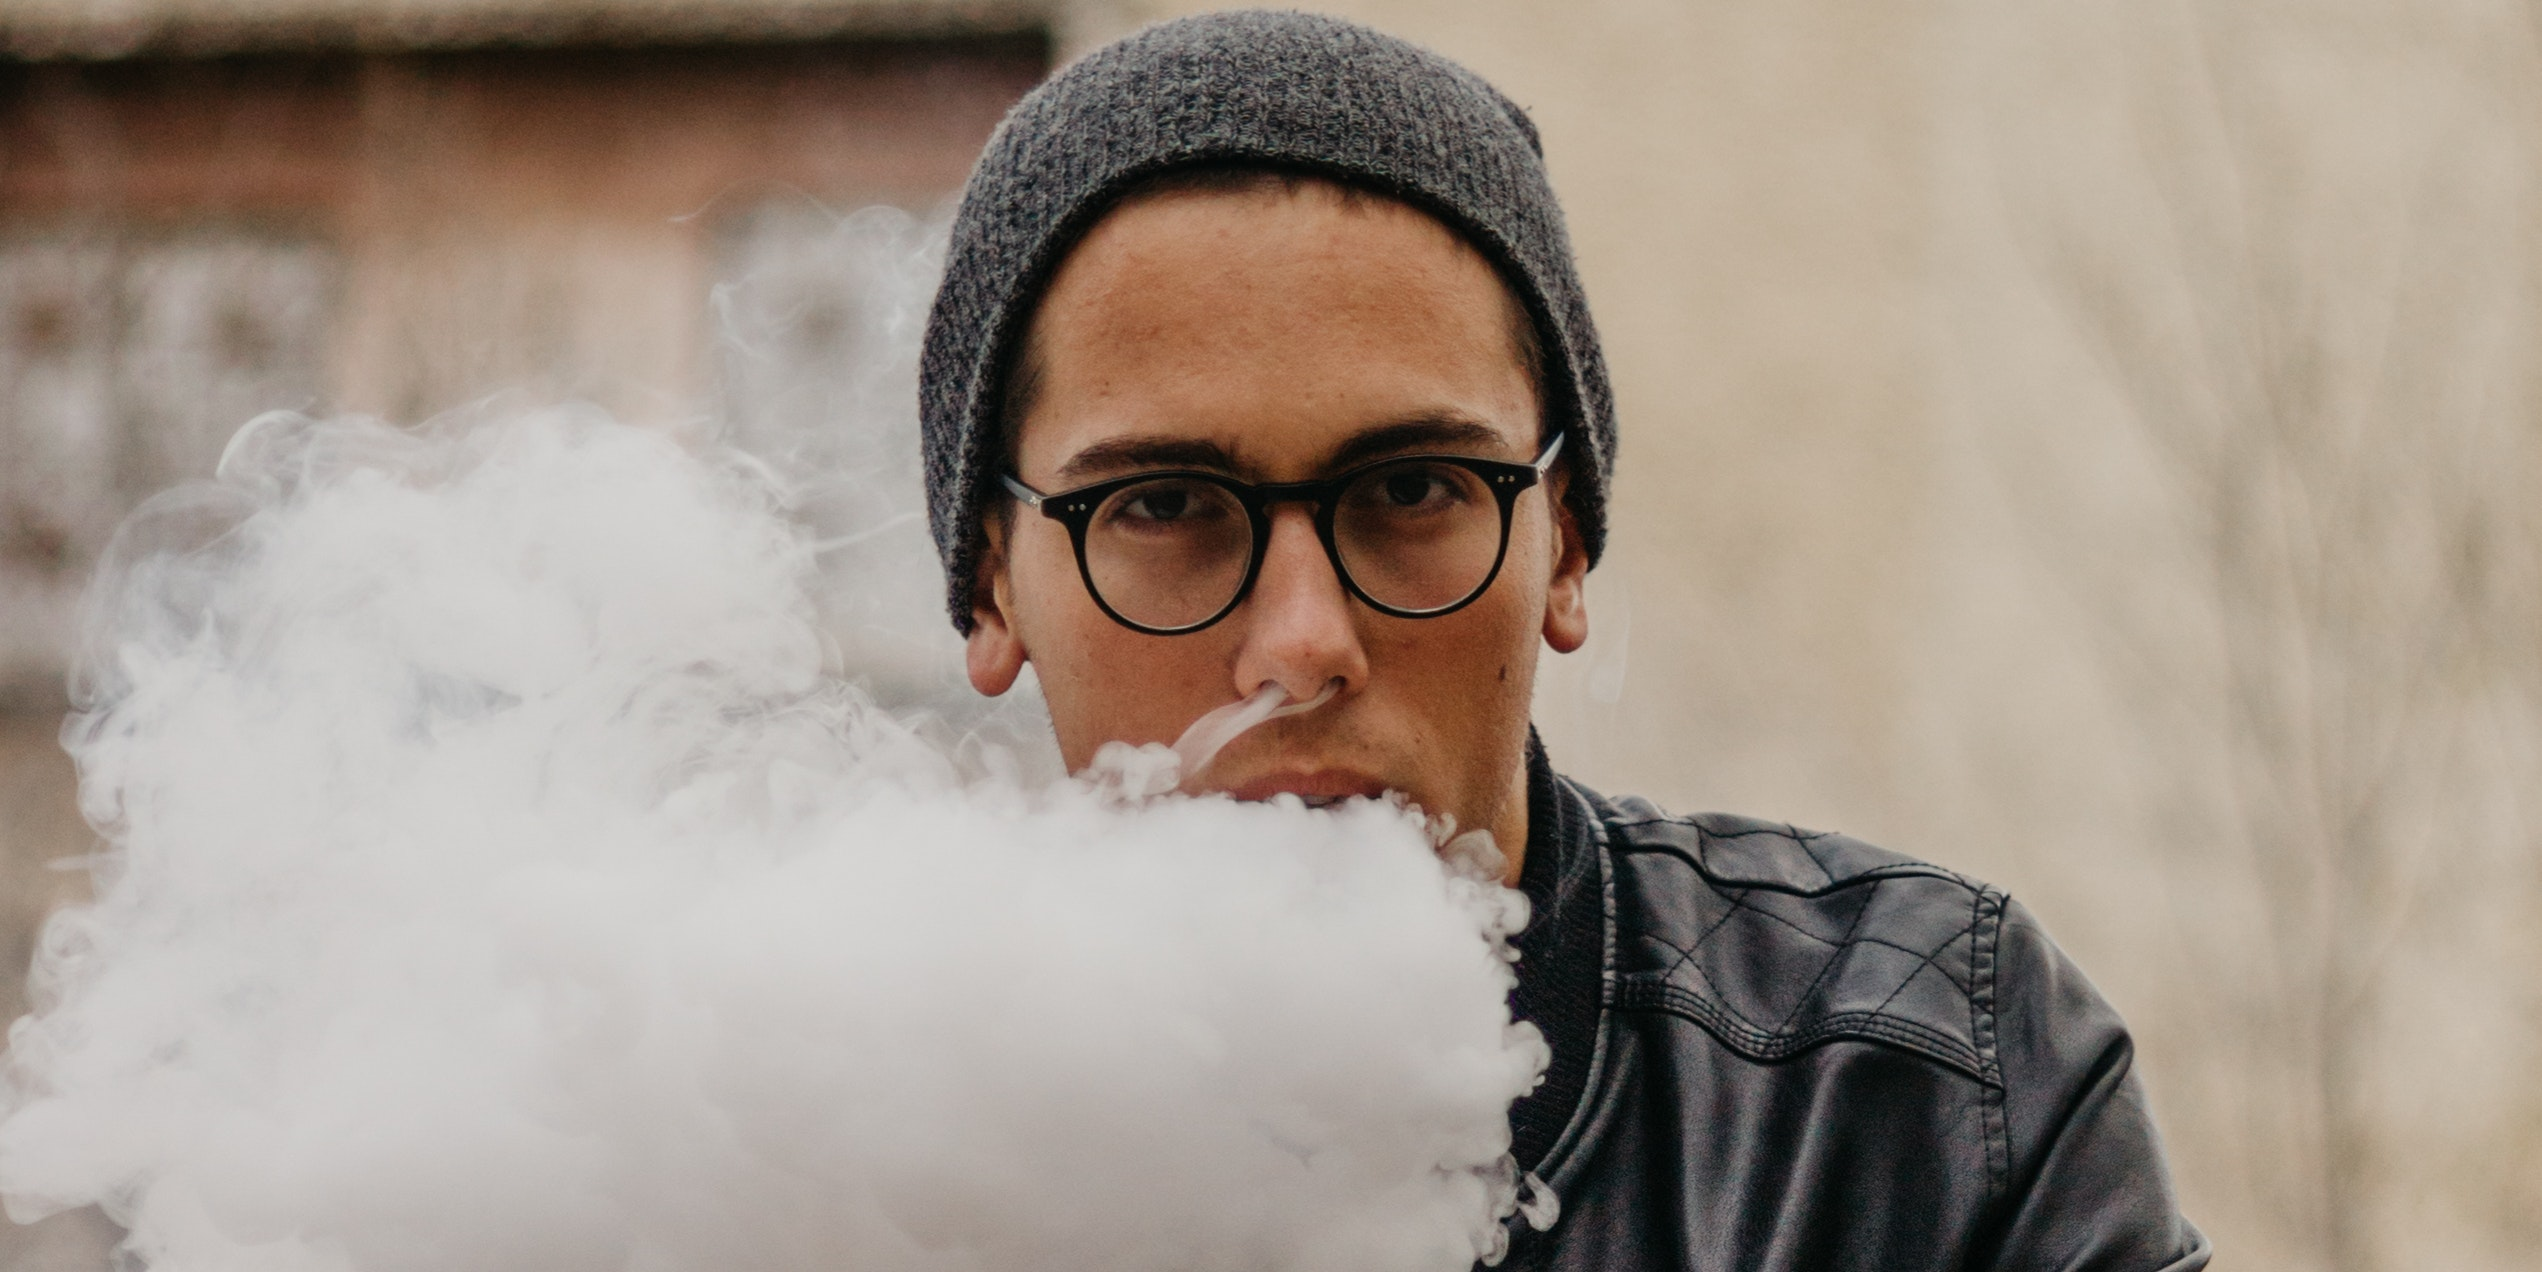 Vaping Introduces DNA-Damaging Chemicals Into Mouth Cells in New Study